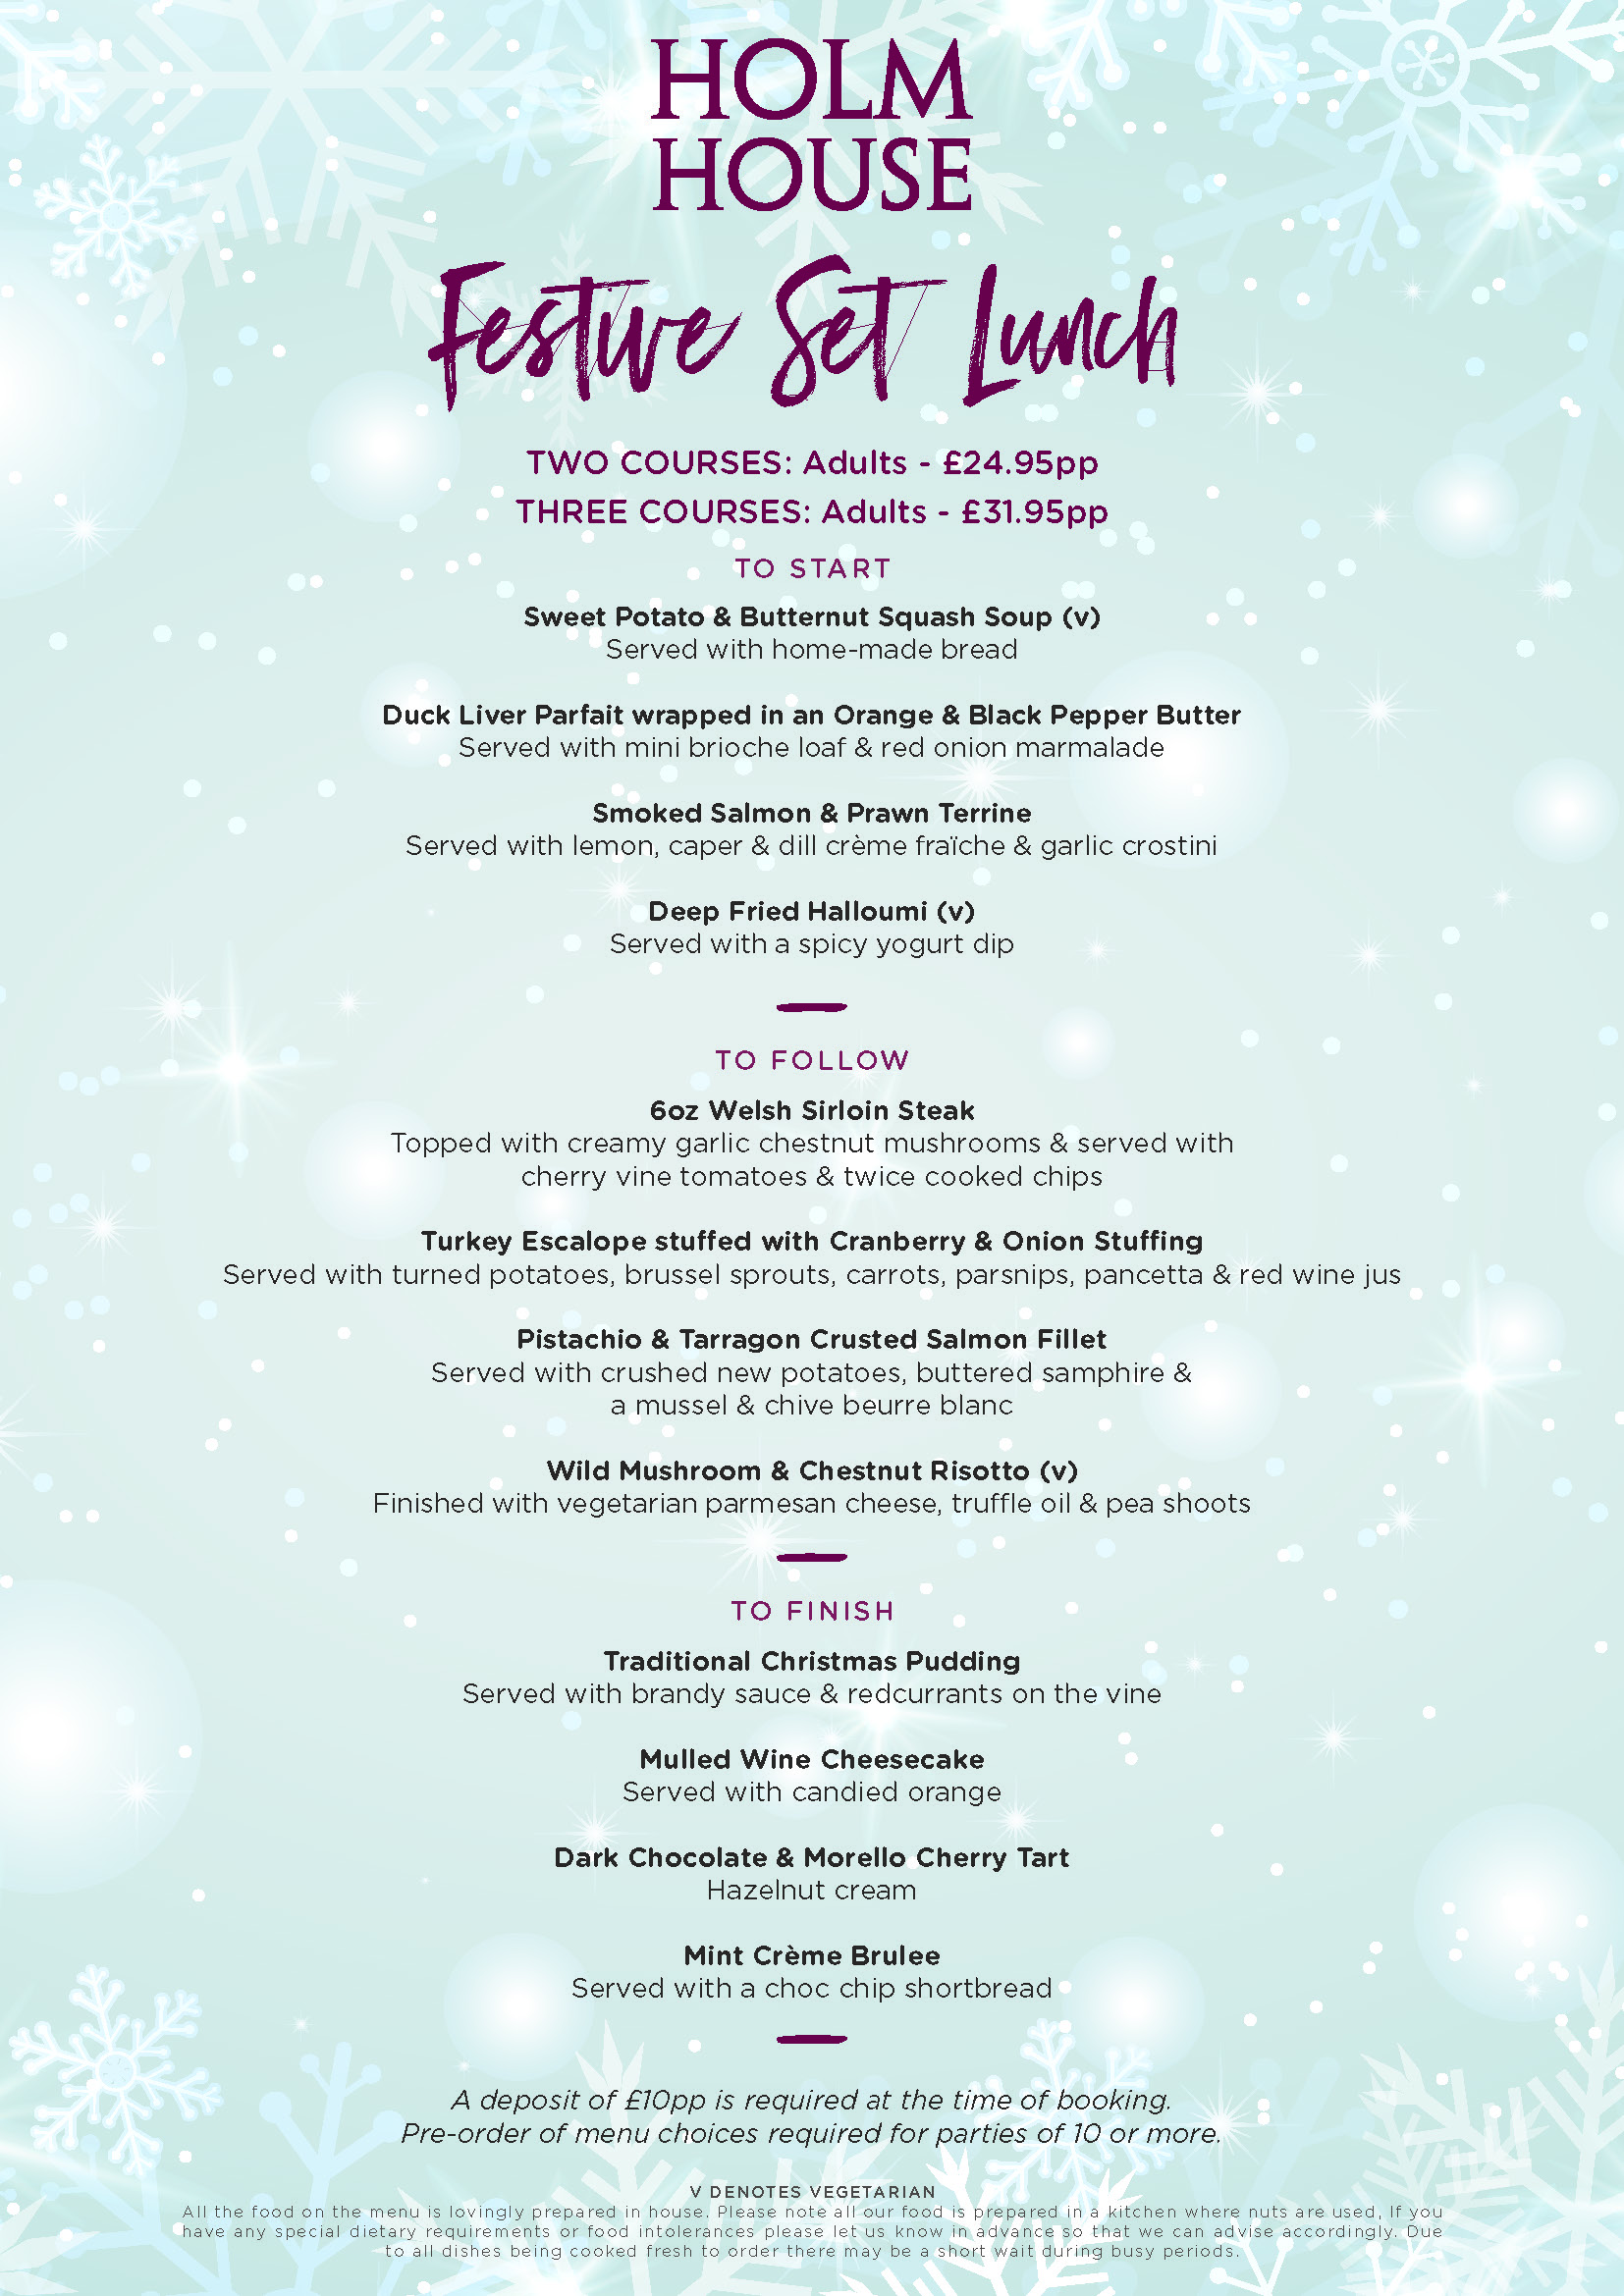 Festive Set Lunch Menu